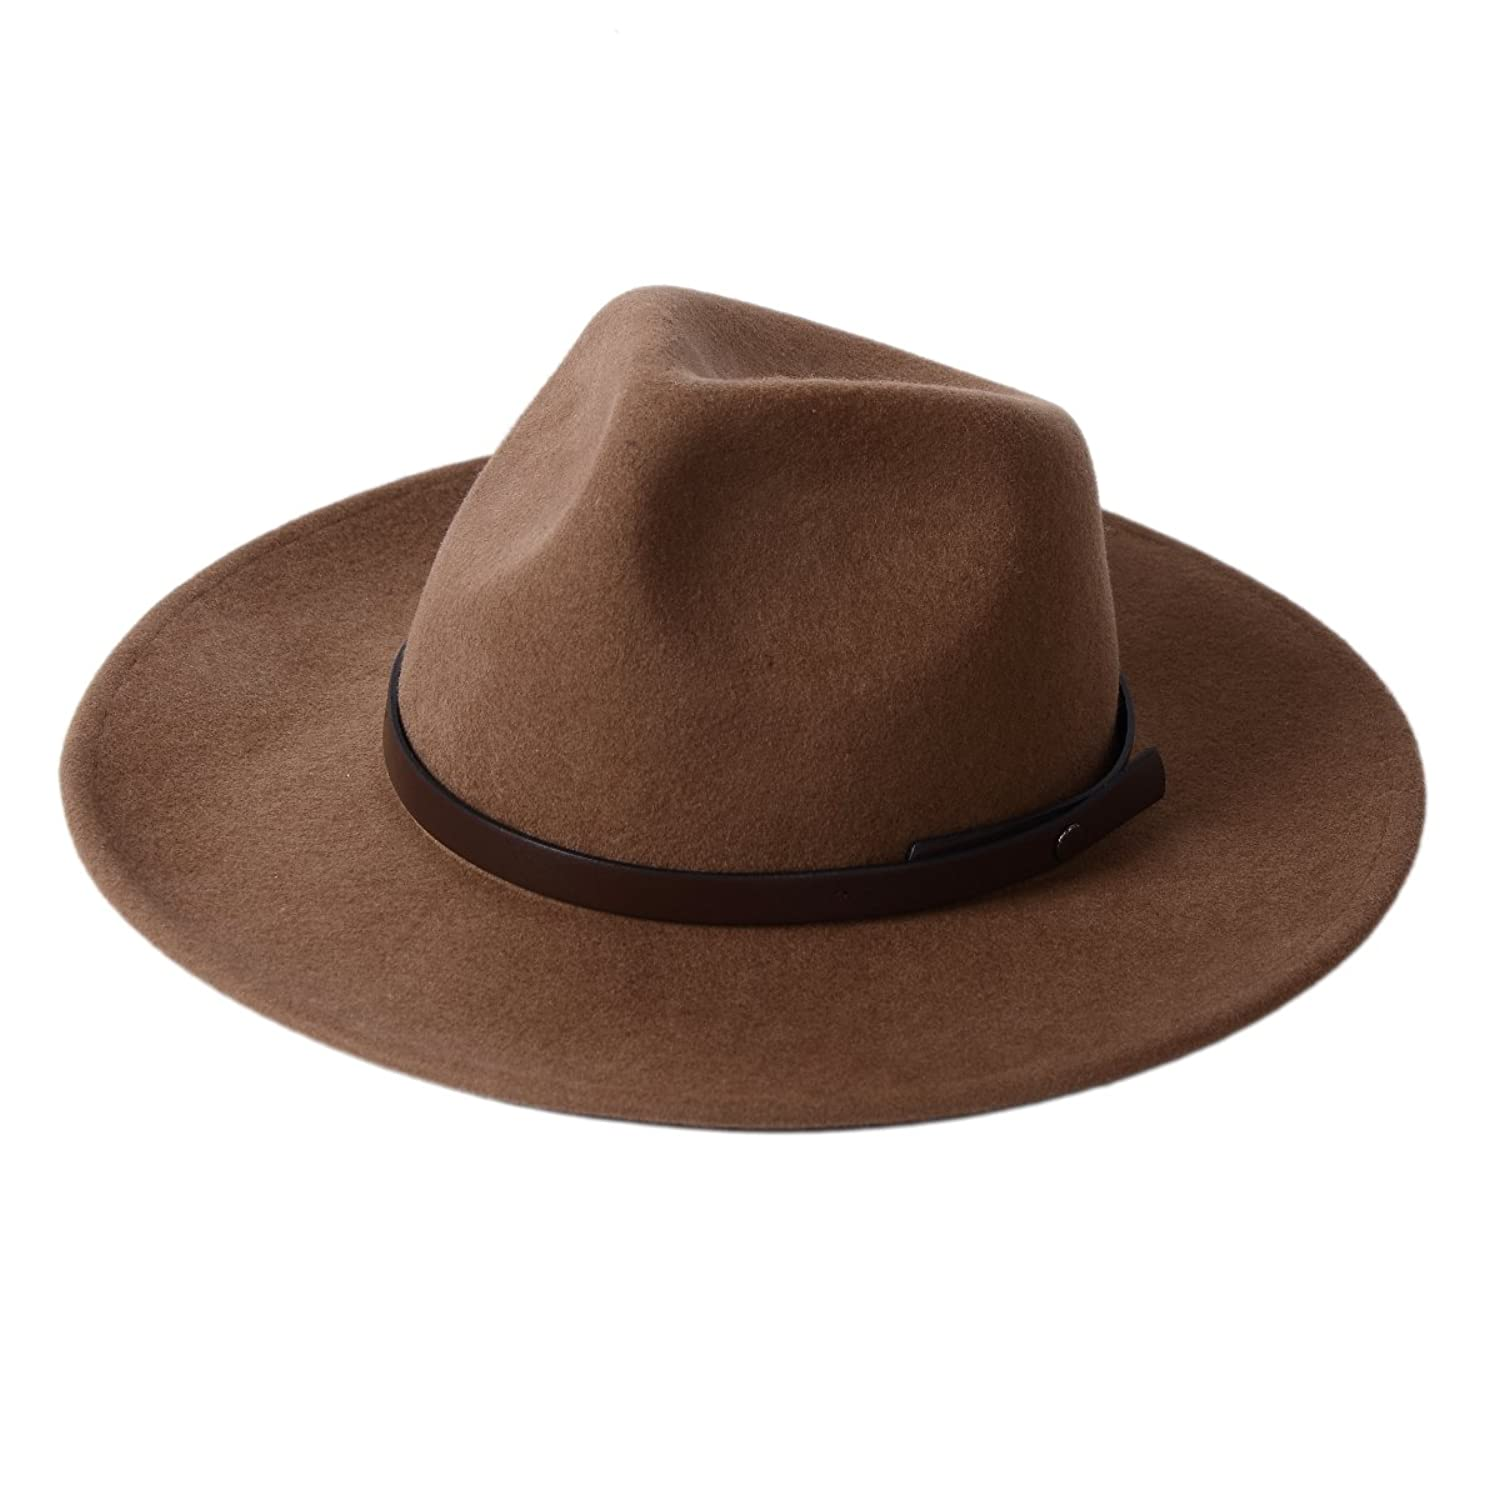 Western Cowboy Hat-Wool Fedora Felt Hats Men Women Crushable Wide Brim  Trilby f8500a1ccb1c